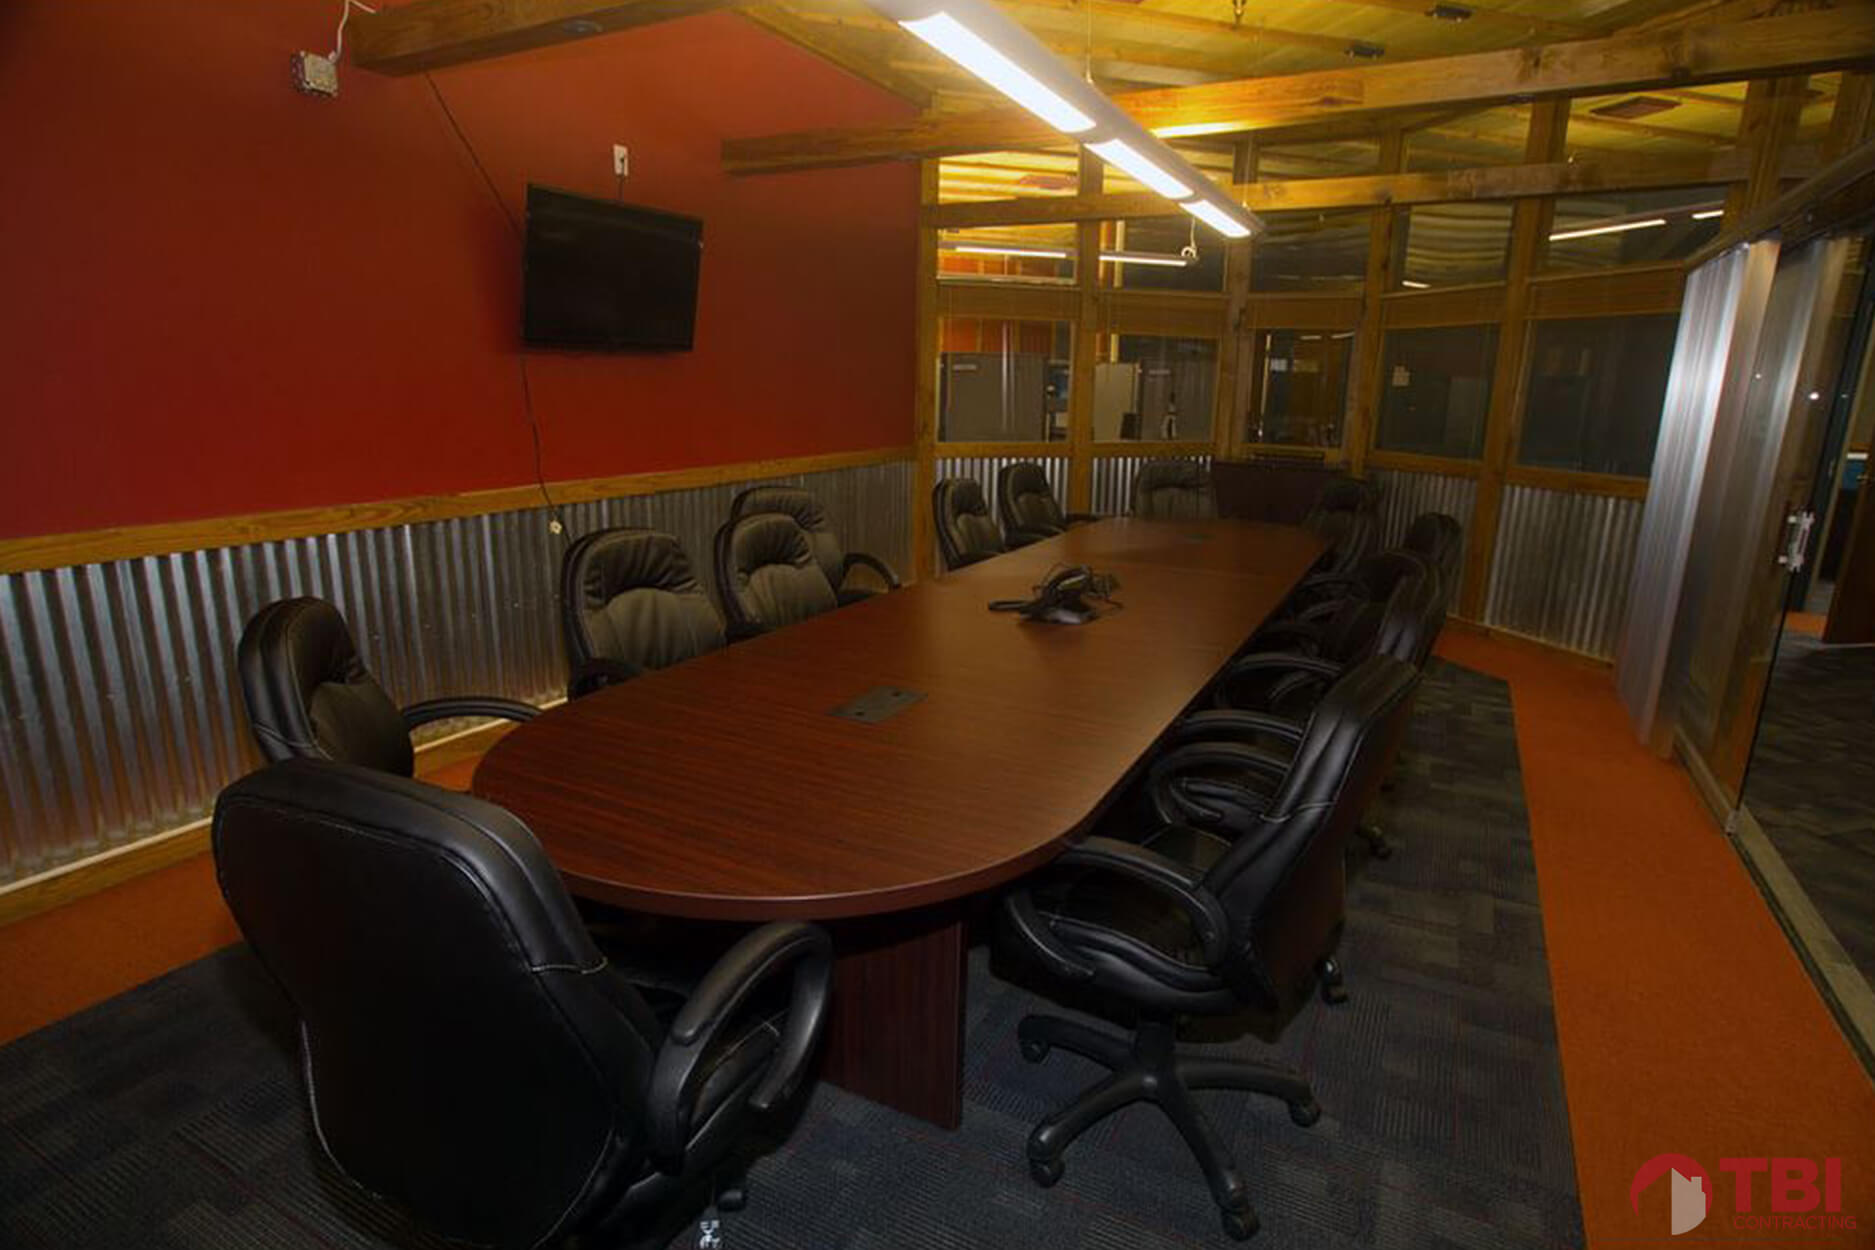 https://tbicontracting.com/wp-content/uploads/2015/04/gristmill-corporate-center-4.jpg